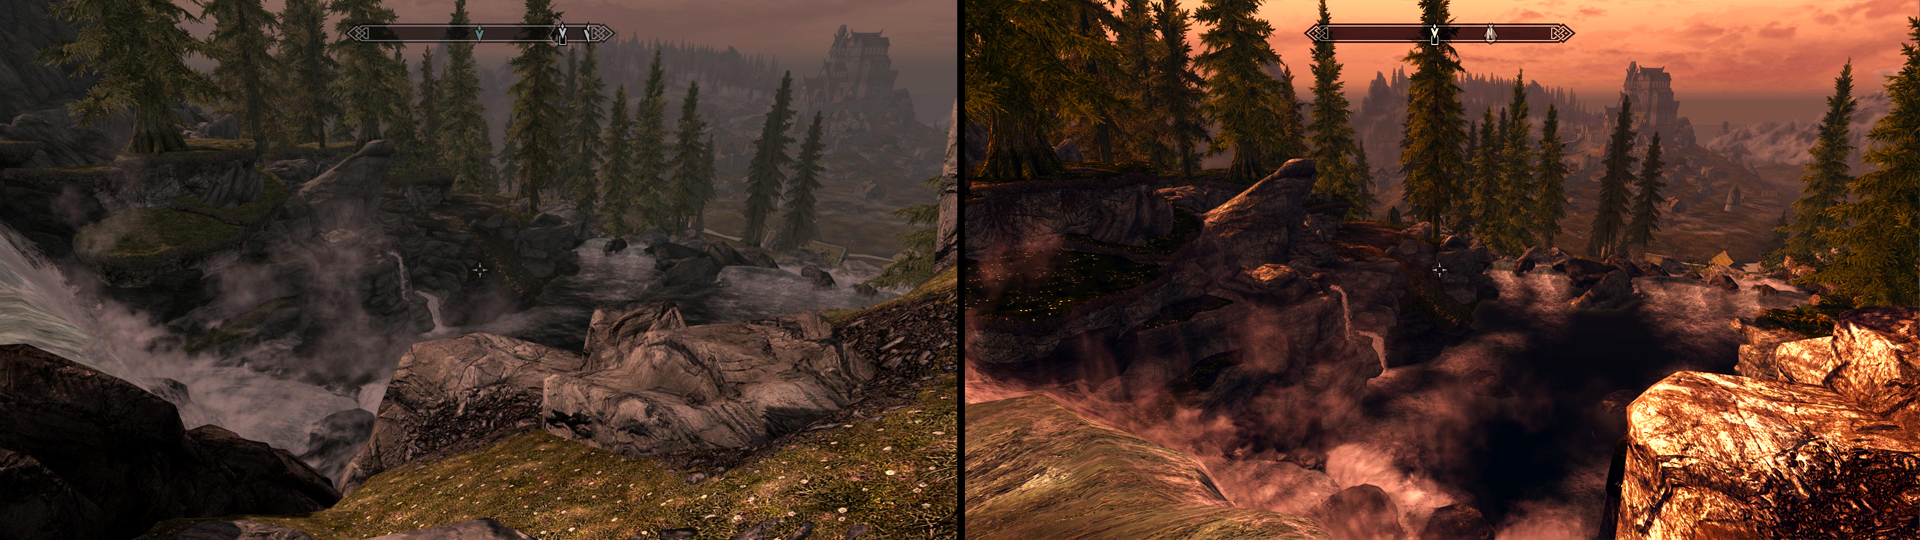 Best Skyrim Graphics Mods: Before and After | GamersNexus - Gaming